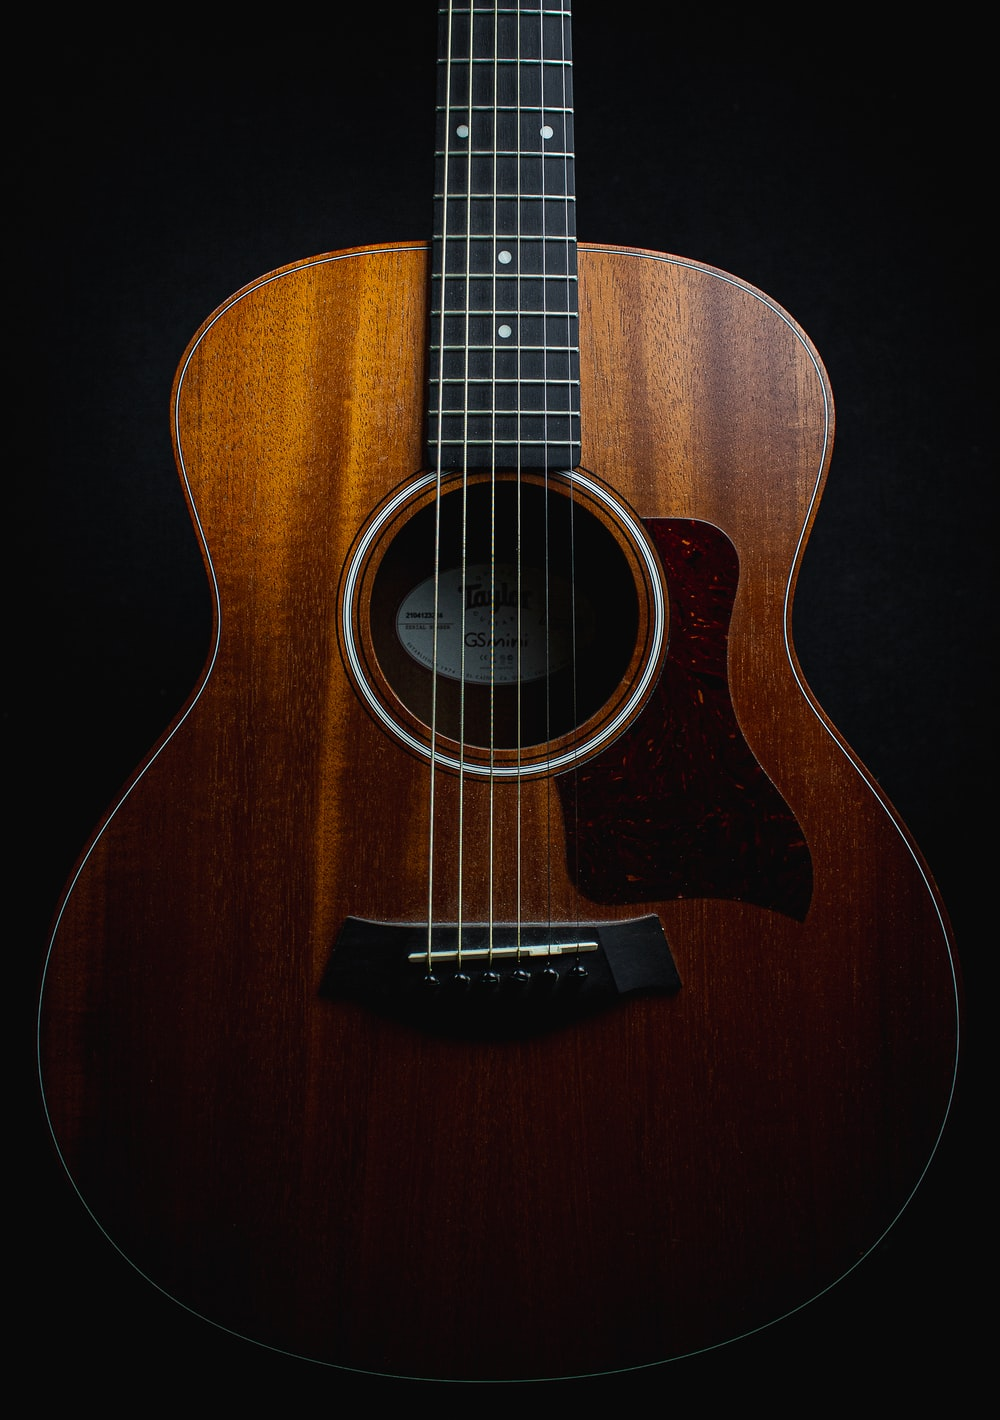 500 Acoustic Guitar Pictures Hd Download Free Images On Unsplash